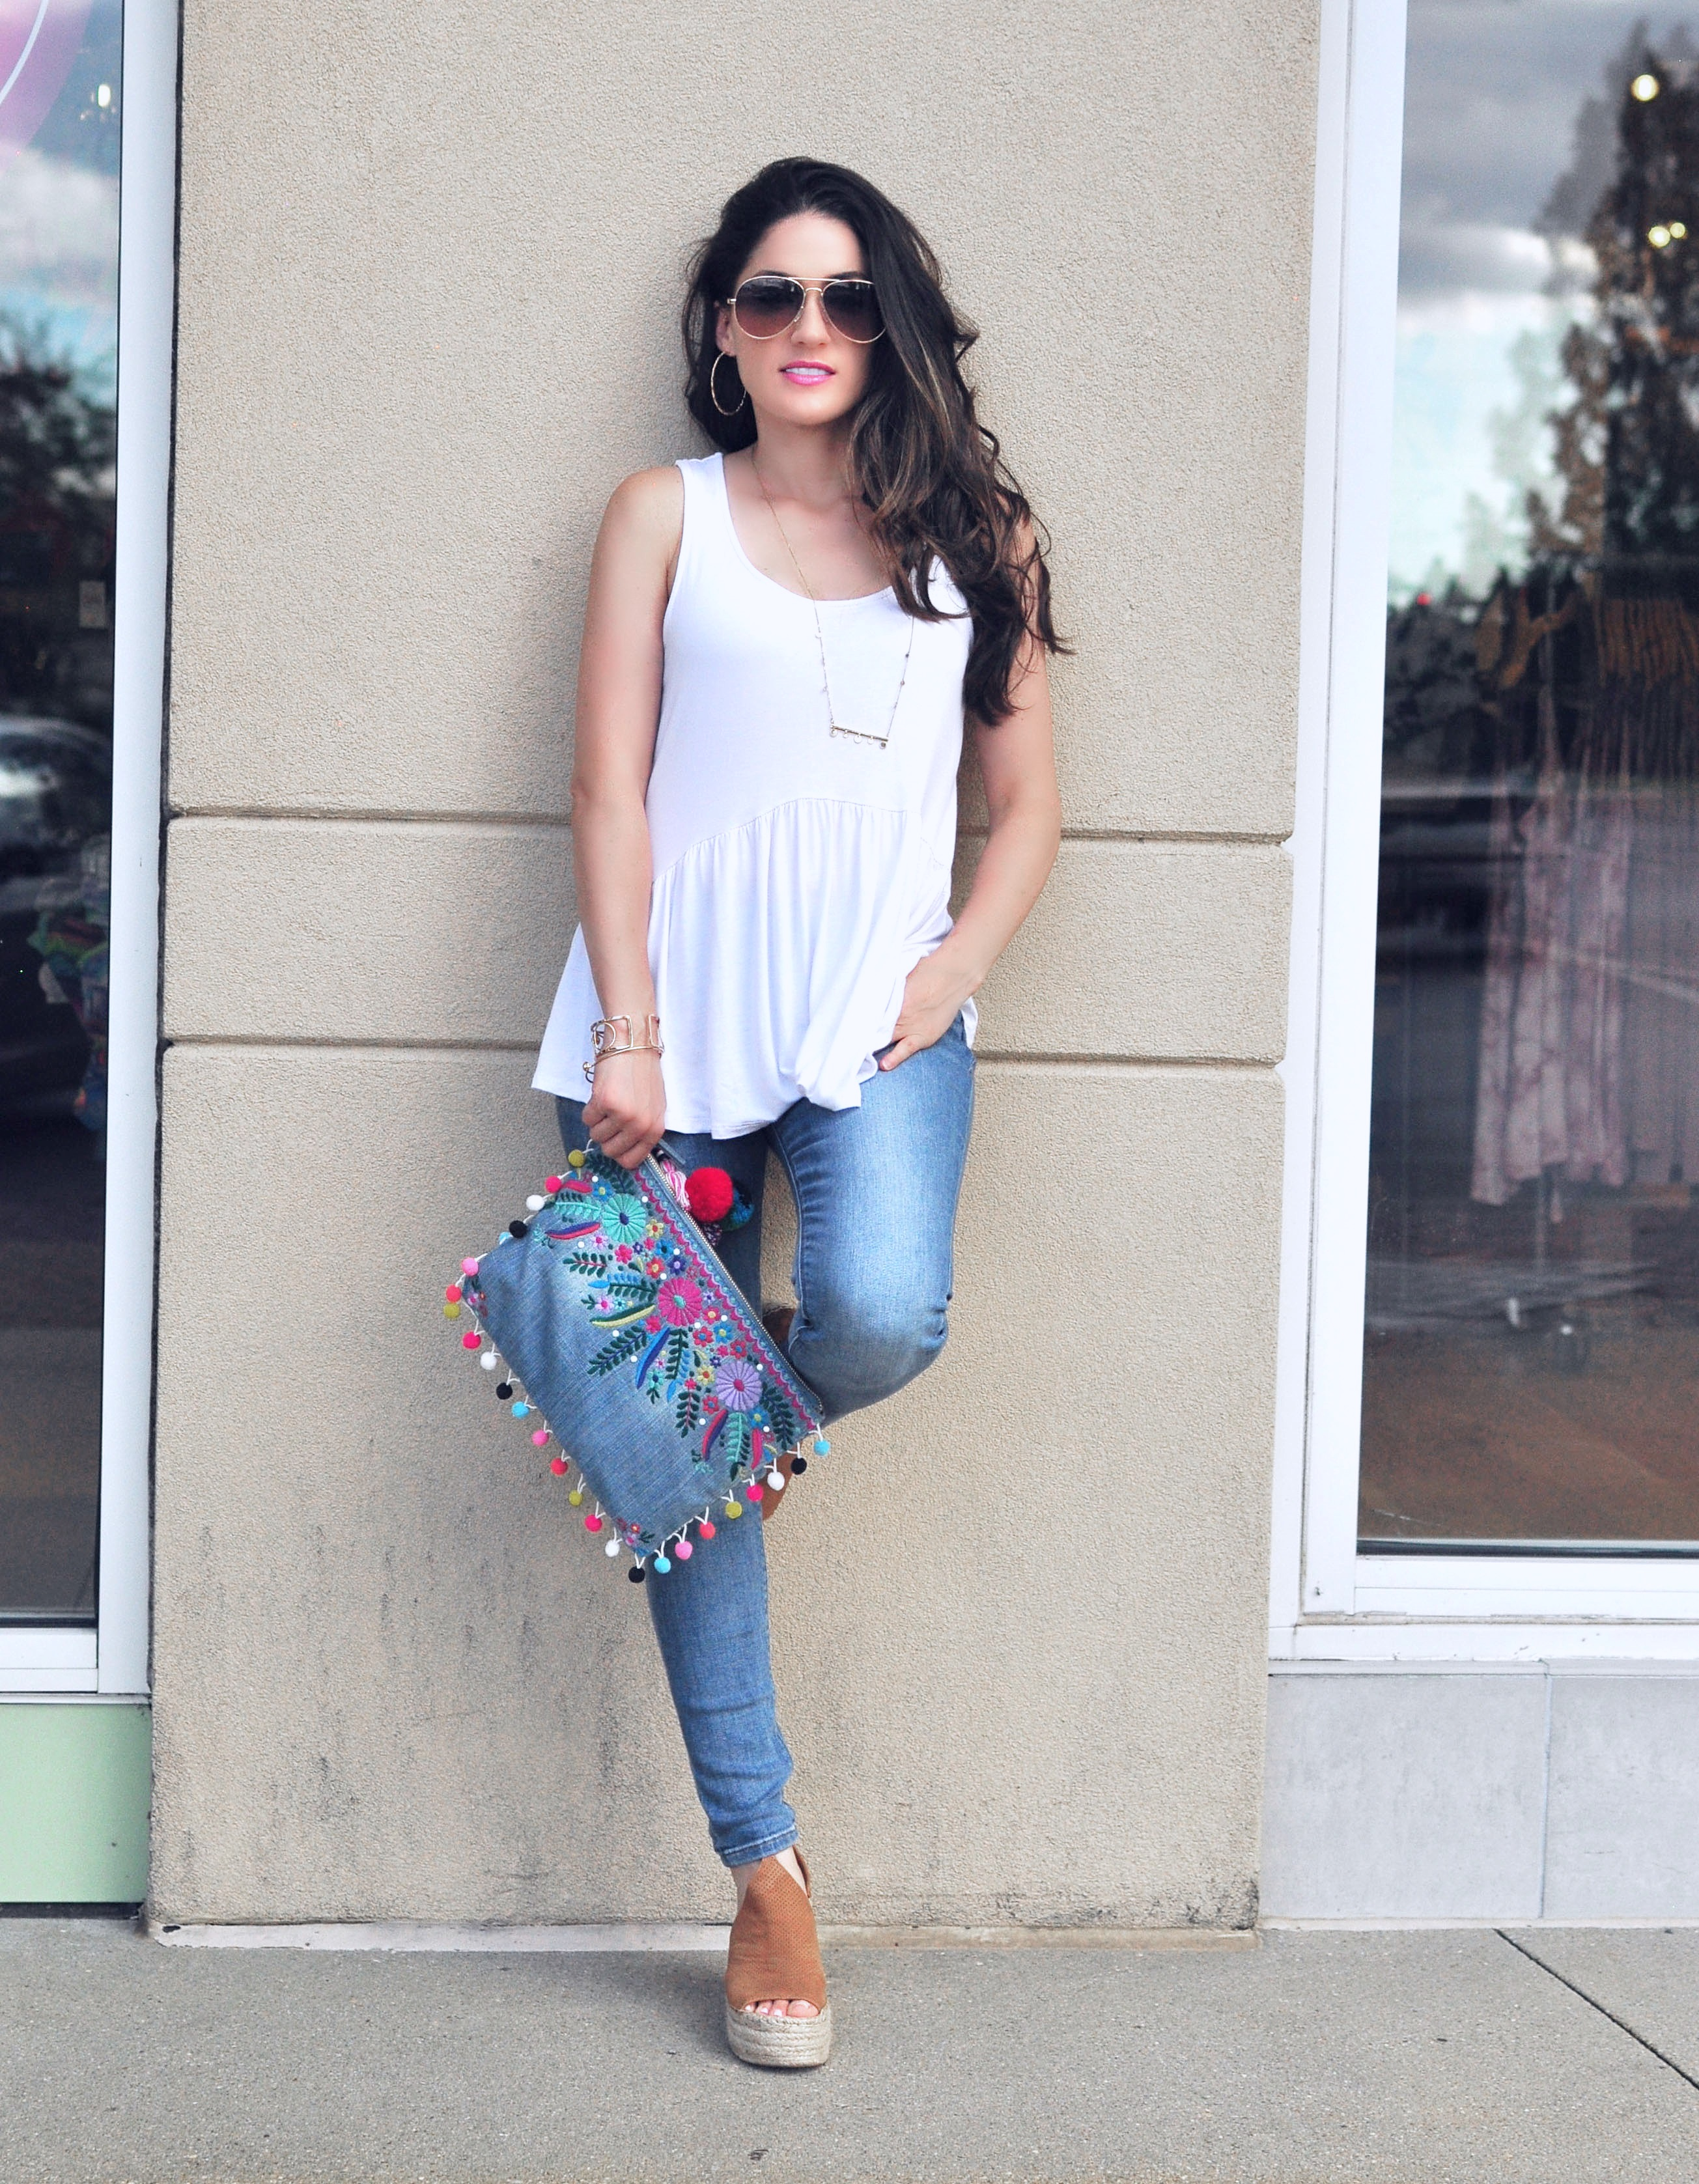 White Tee & Jeans - Style Blogger Erica Valentin